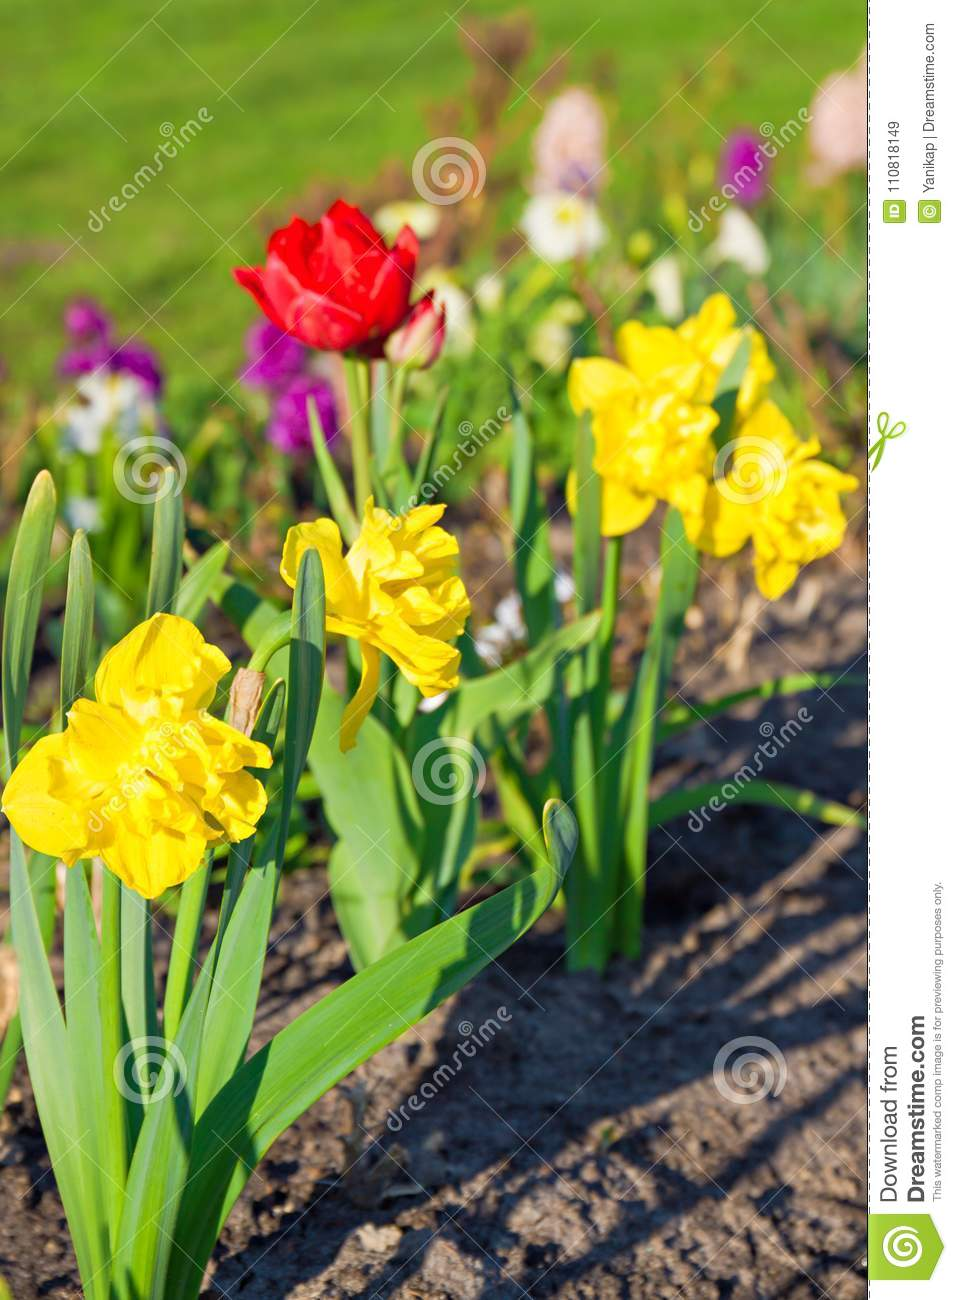 Spring Flowers Daffodils And Tulips Flowering In Garden On A Flo